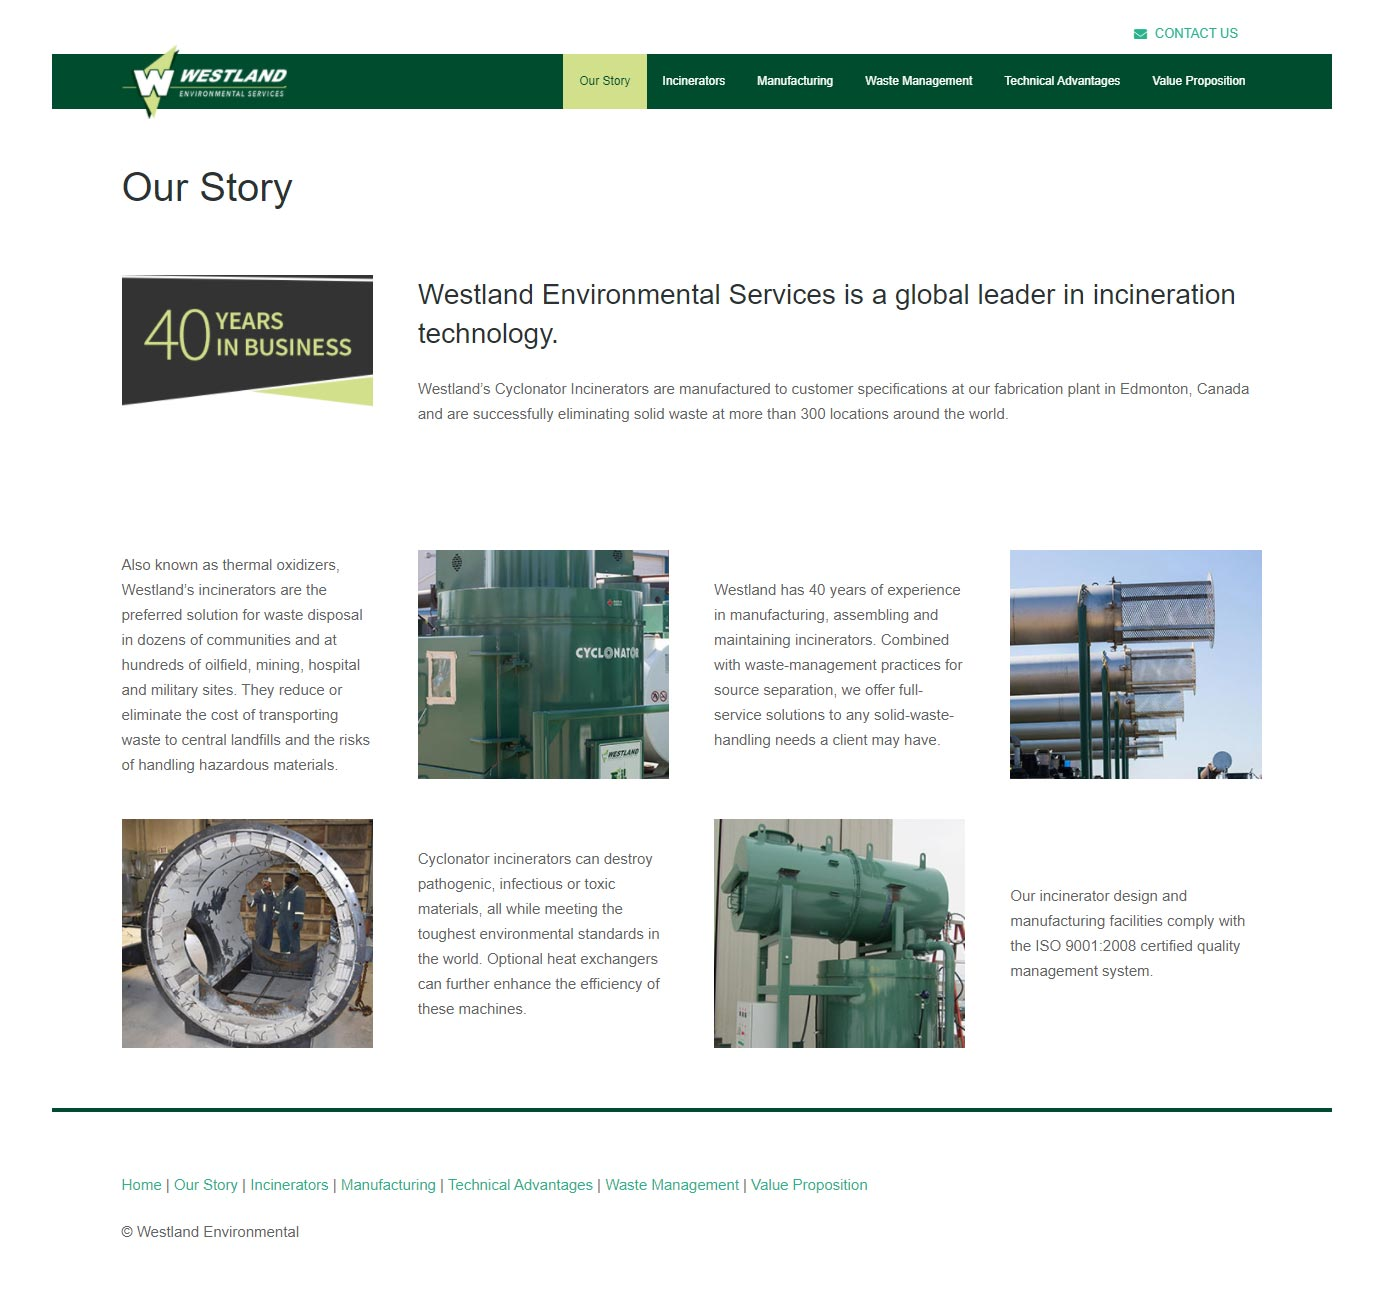 Westland Environmental - Our Story